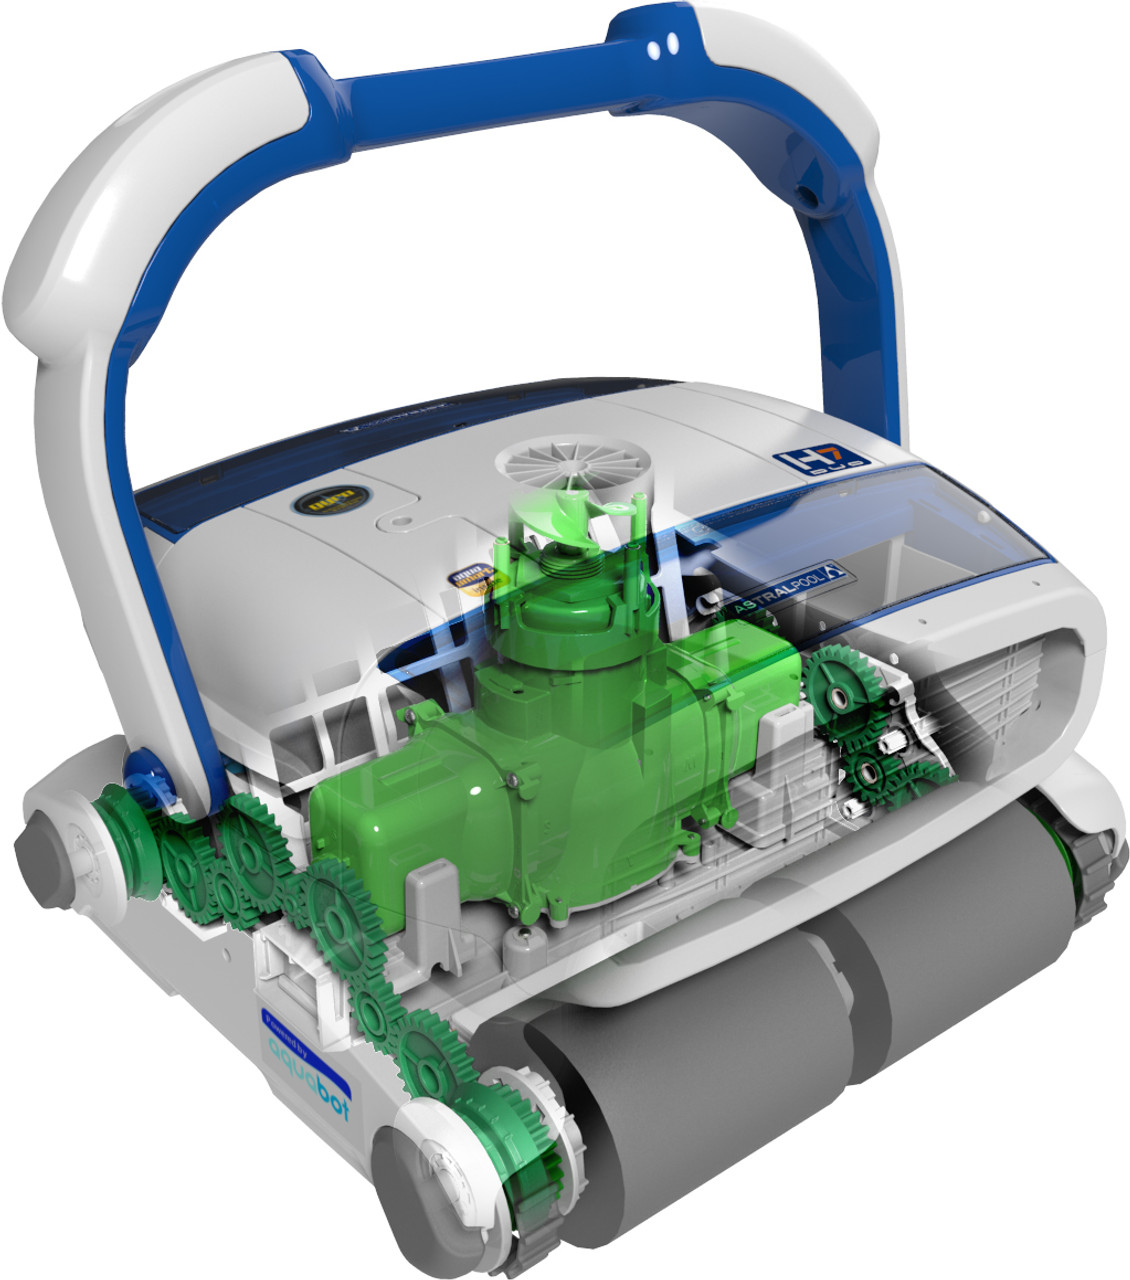 Astral H5 Automatic swimming pool cleaner